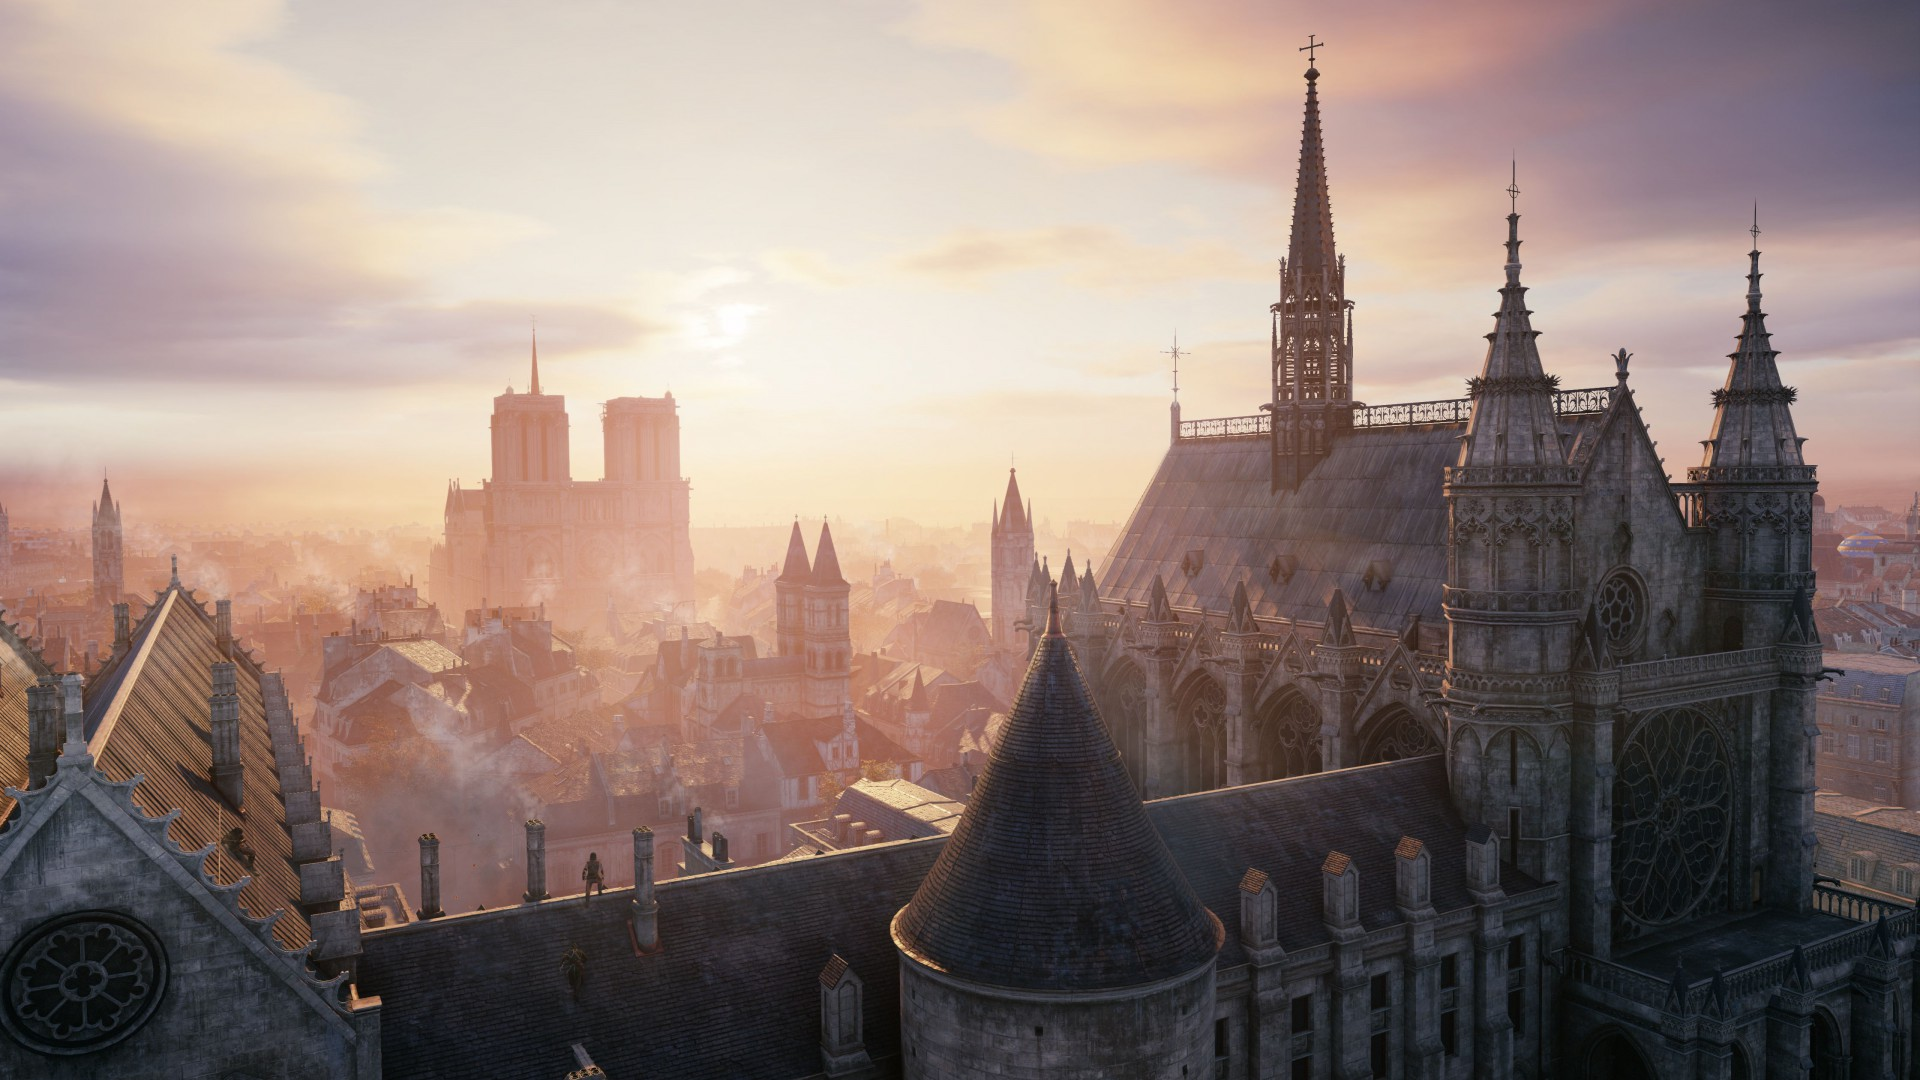 Assassin's Creed: Unity, game, stealth action game, city, screenshot, gameplay, review, 4k, 5k, PS4, Xbox One, PC (horizontal)